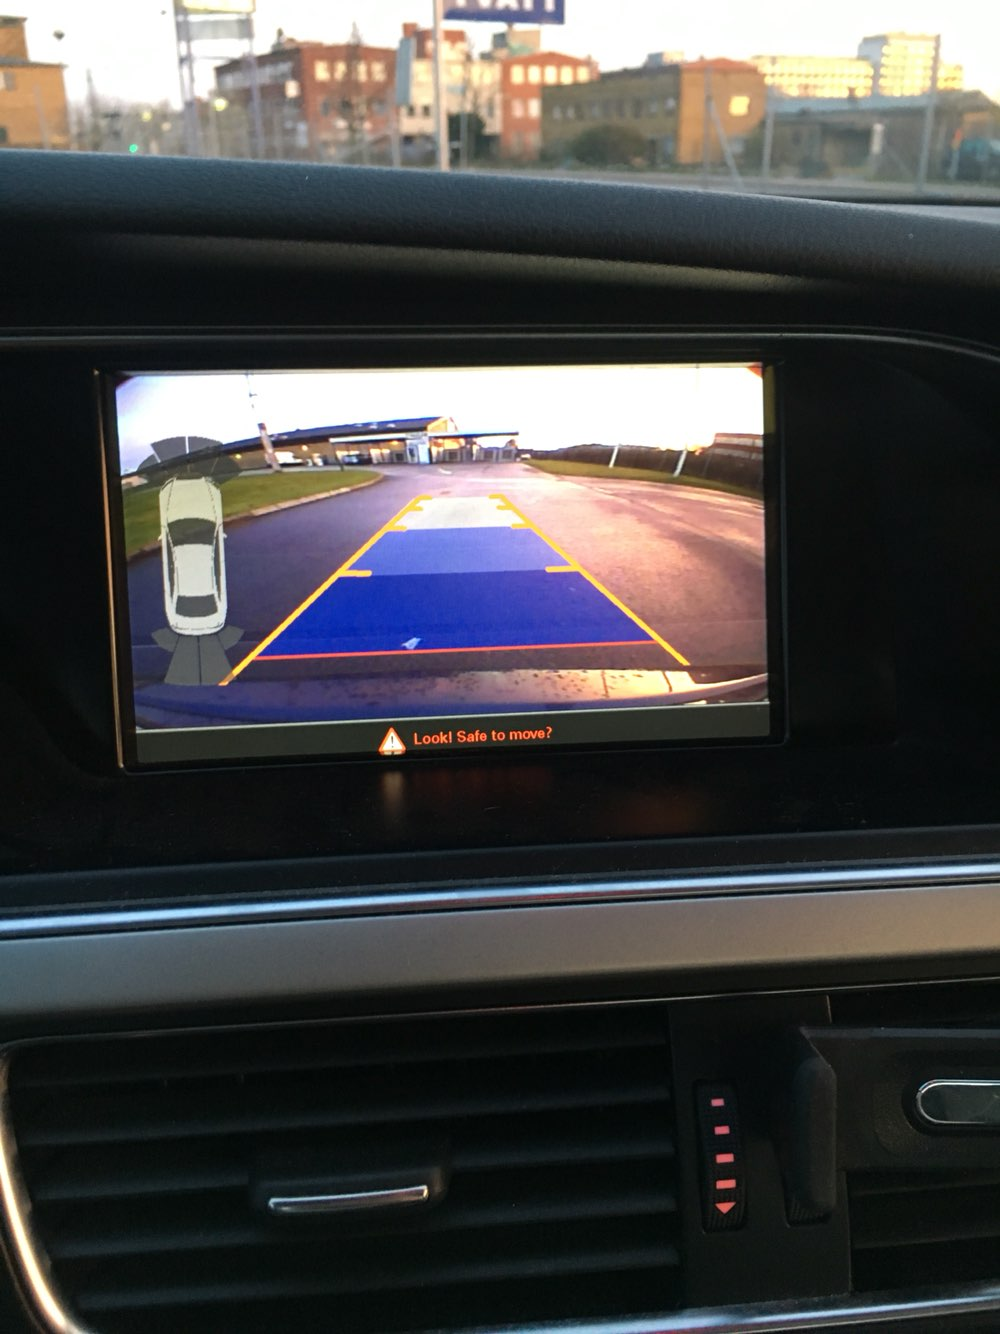 Car parking aid for Audi A5 A4 Q5 3G MMI front and rear view camera interfaceCar parking aid for Audi A5 A4 Q5 3G MMI front and rear view camera interface